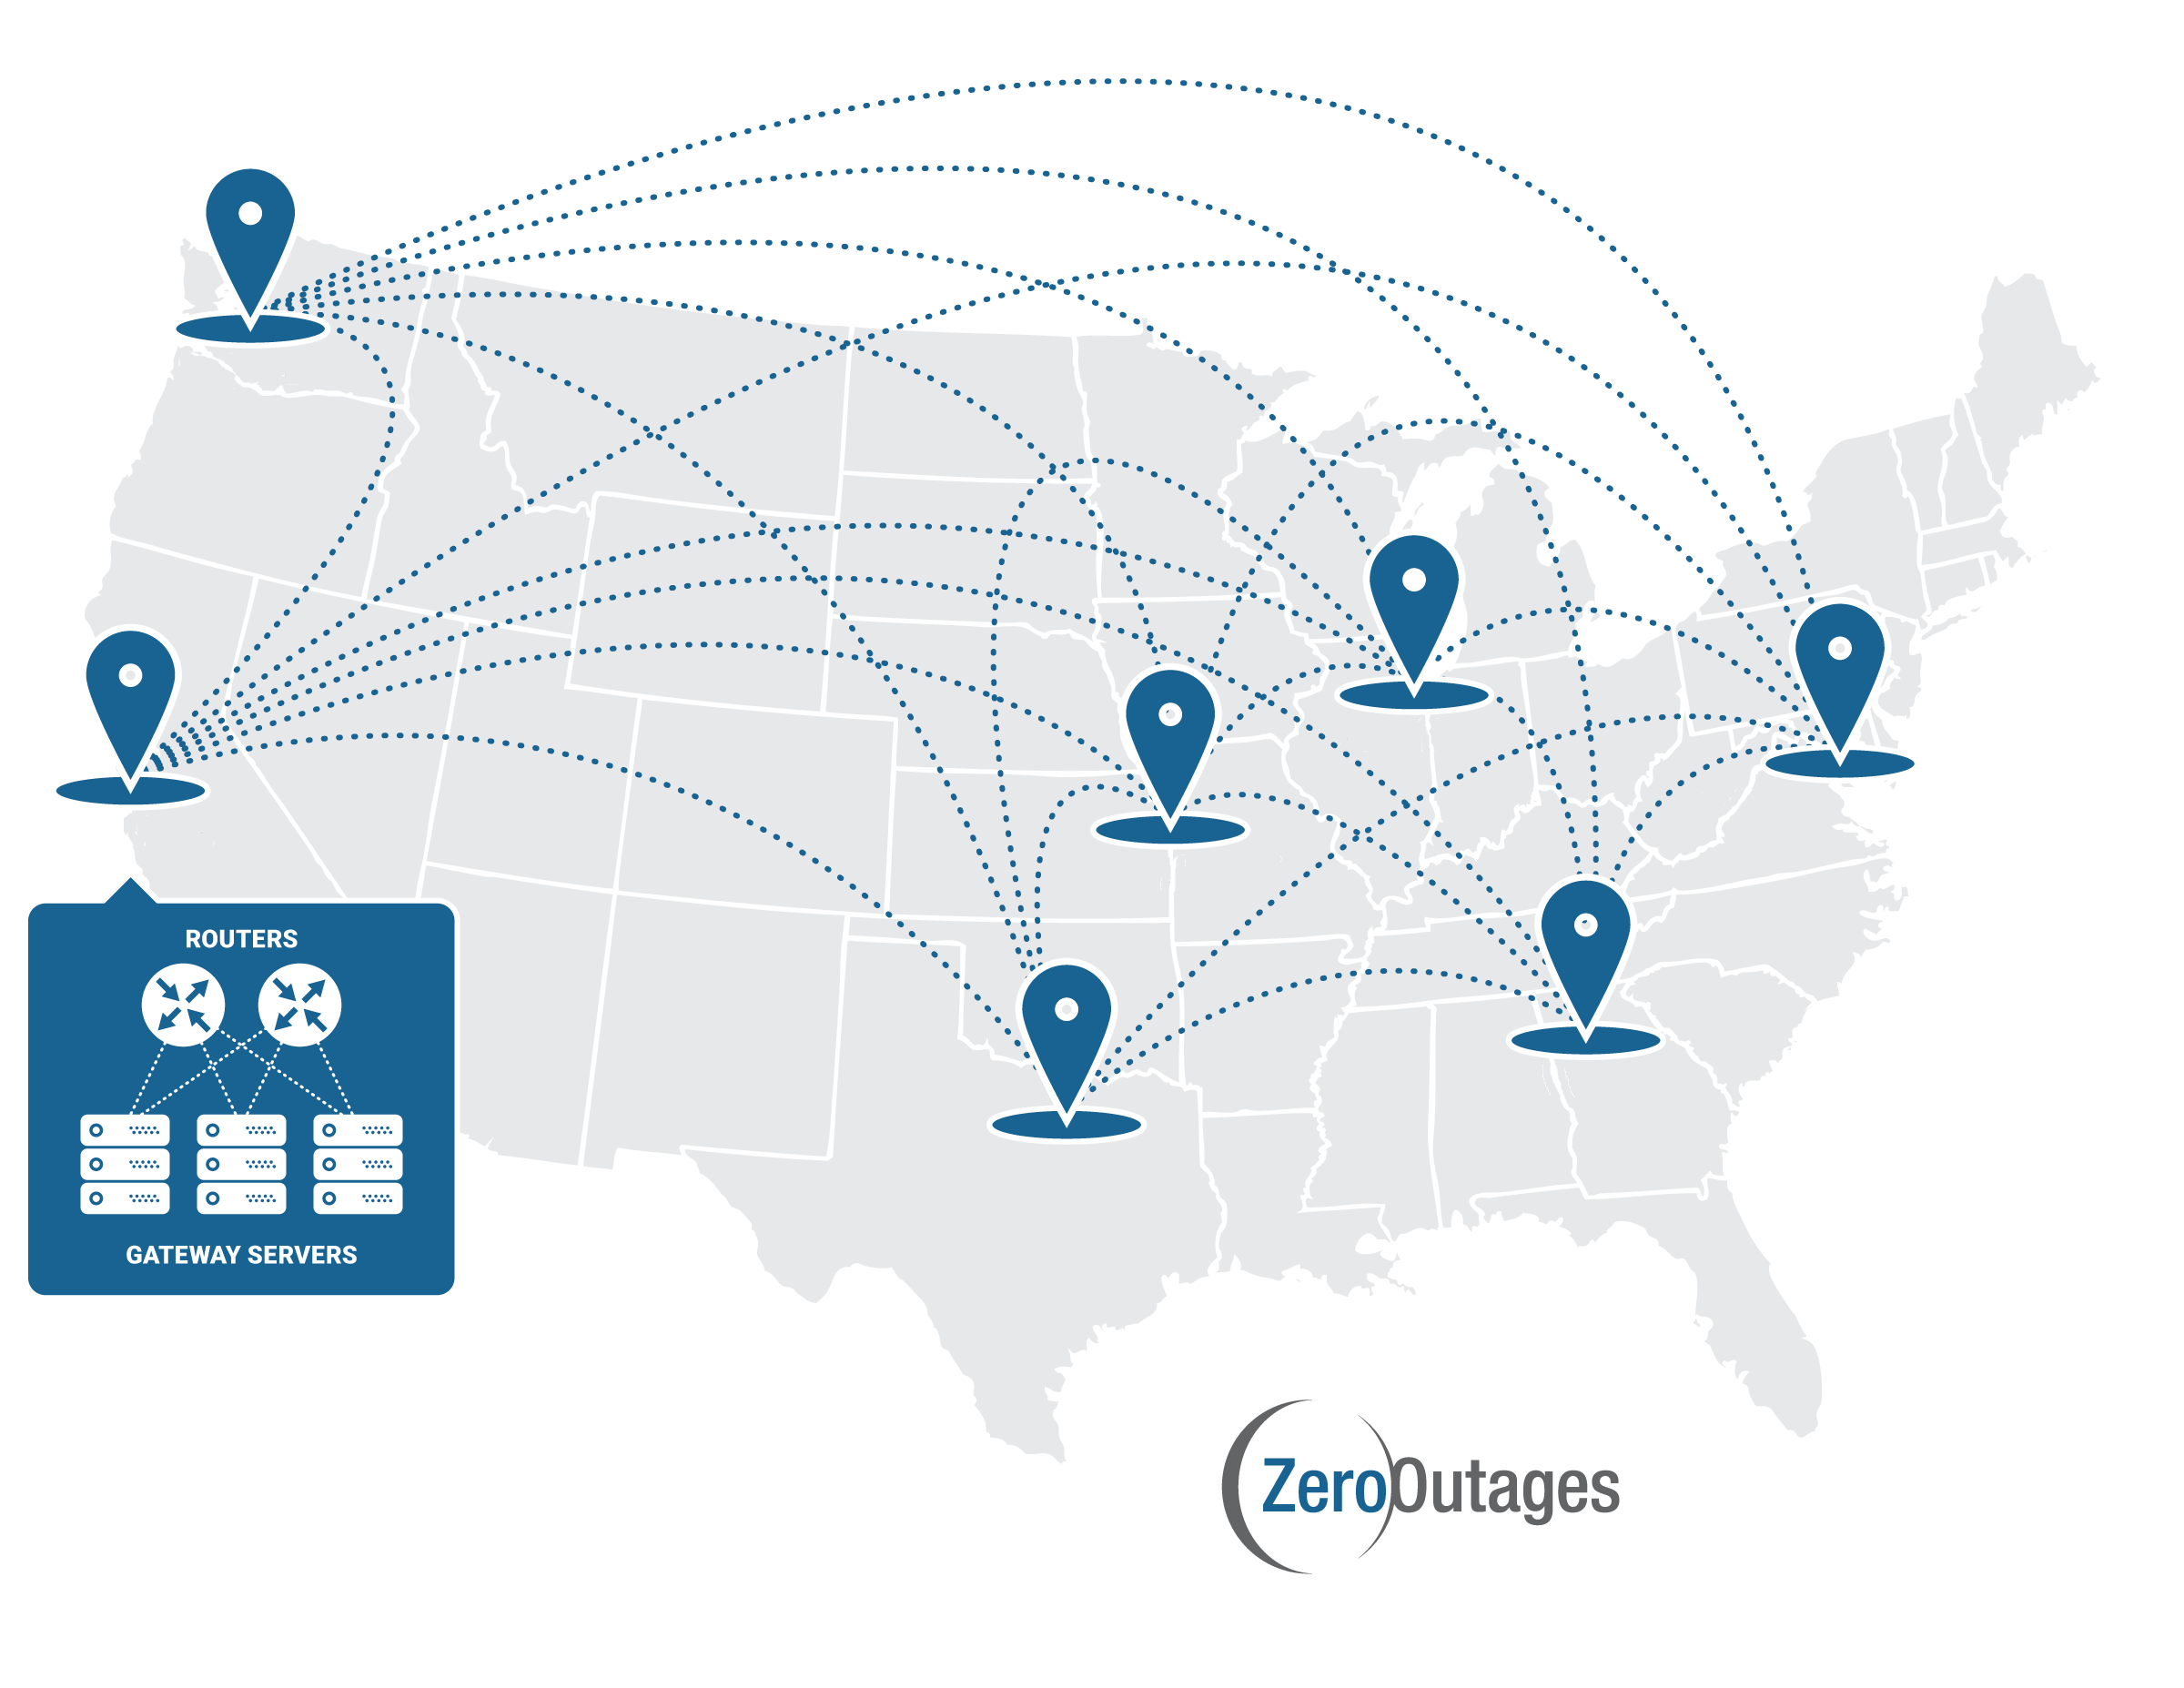 ZeroOutages Data Center Map